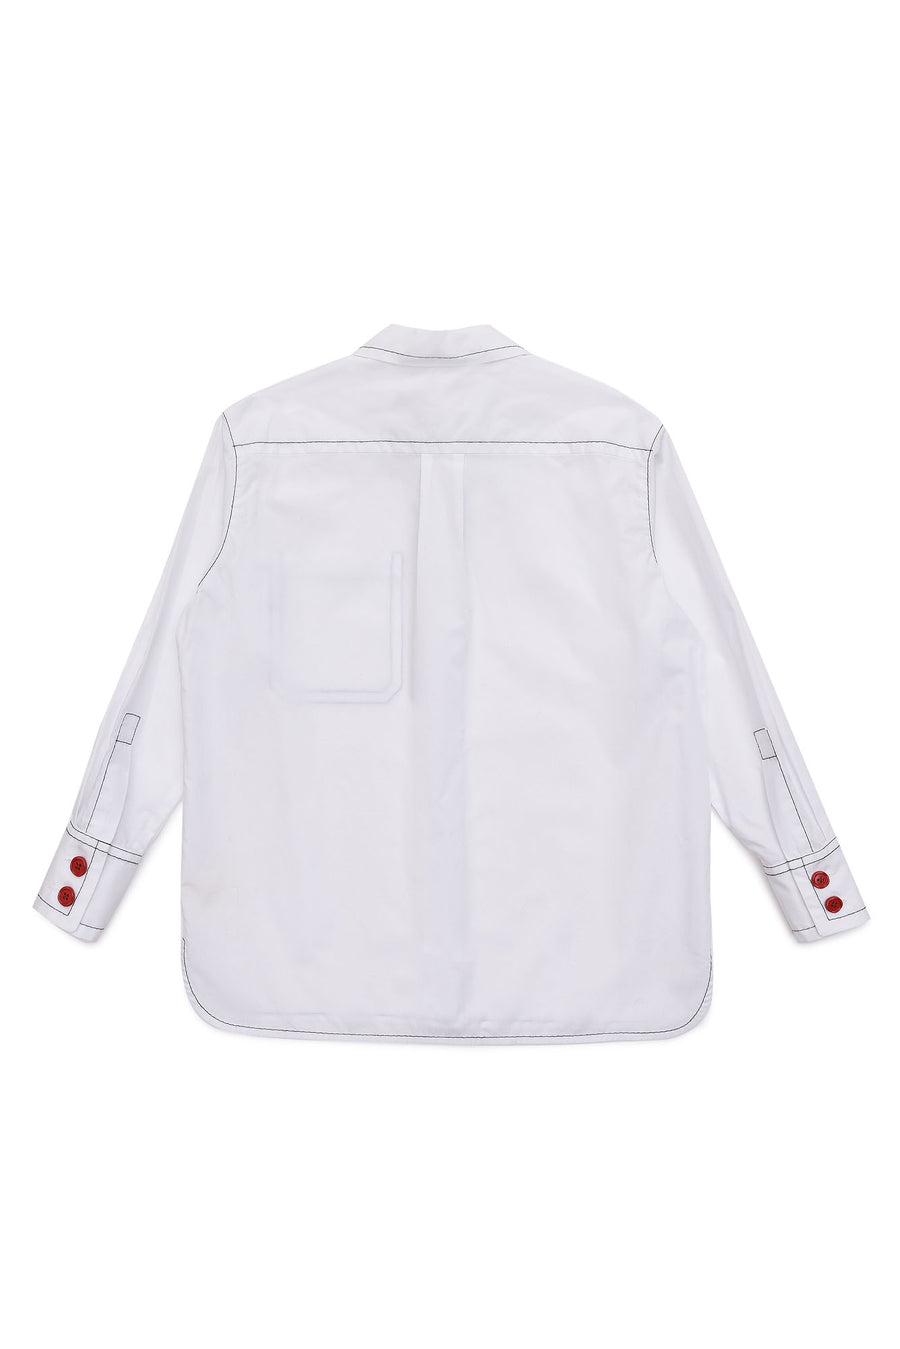 Piped White Shirt by Marni